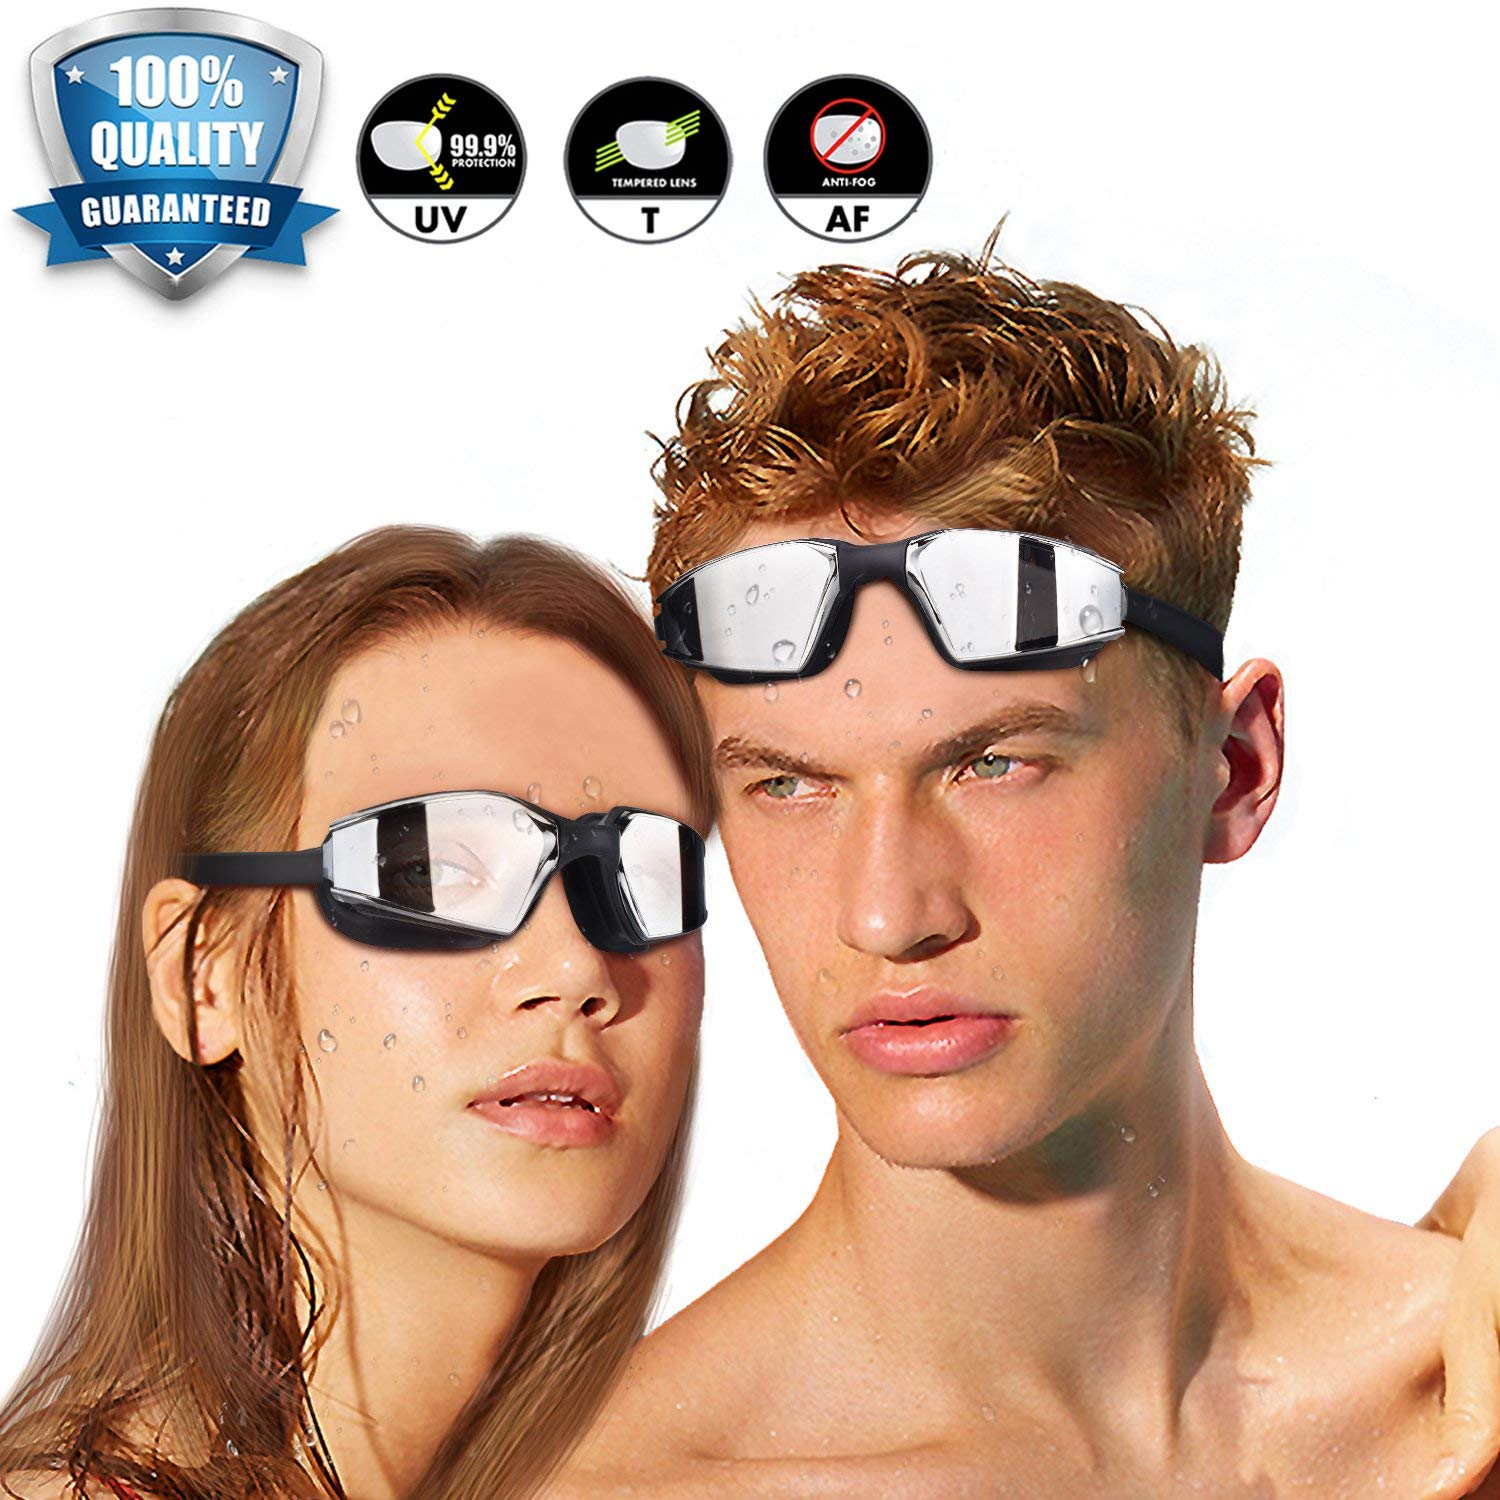 EUARCH Swim Goggles, Junior Googles for Swimming Adult Anti Fog Men Swim Goggles Racing Swimming Goggles for Men UV Water Goggles Competitive Pool Goggles Adult for Women,Men,Youth